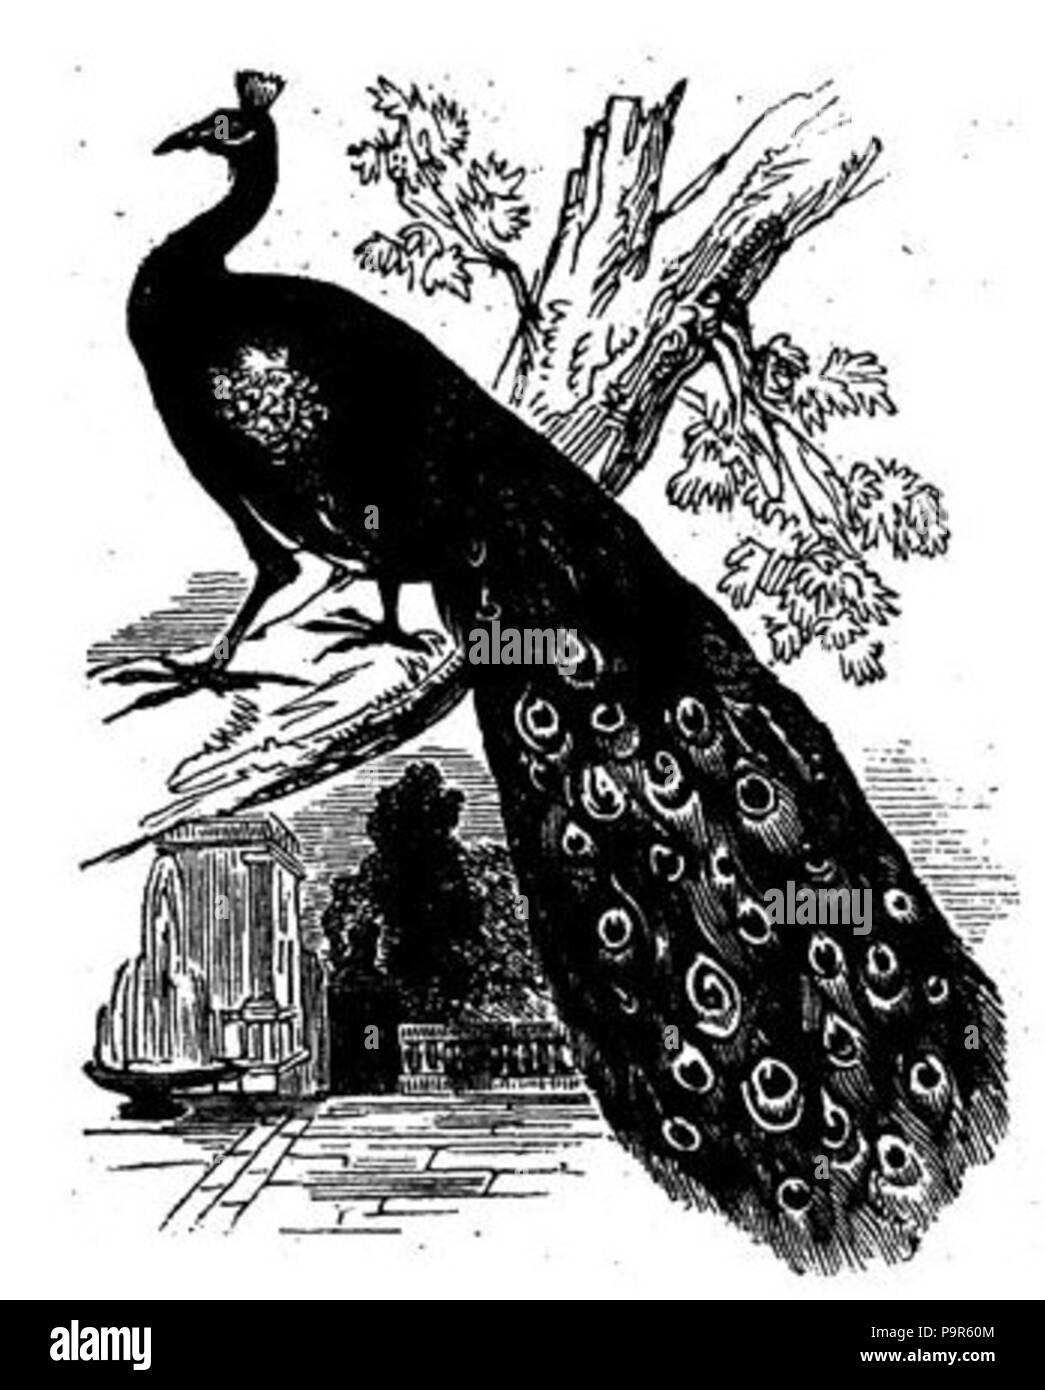 208 Black and White Peacock Drawing Stock Photo: 212565940 - Alamy